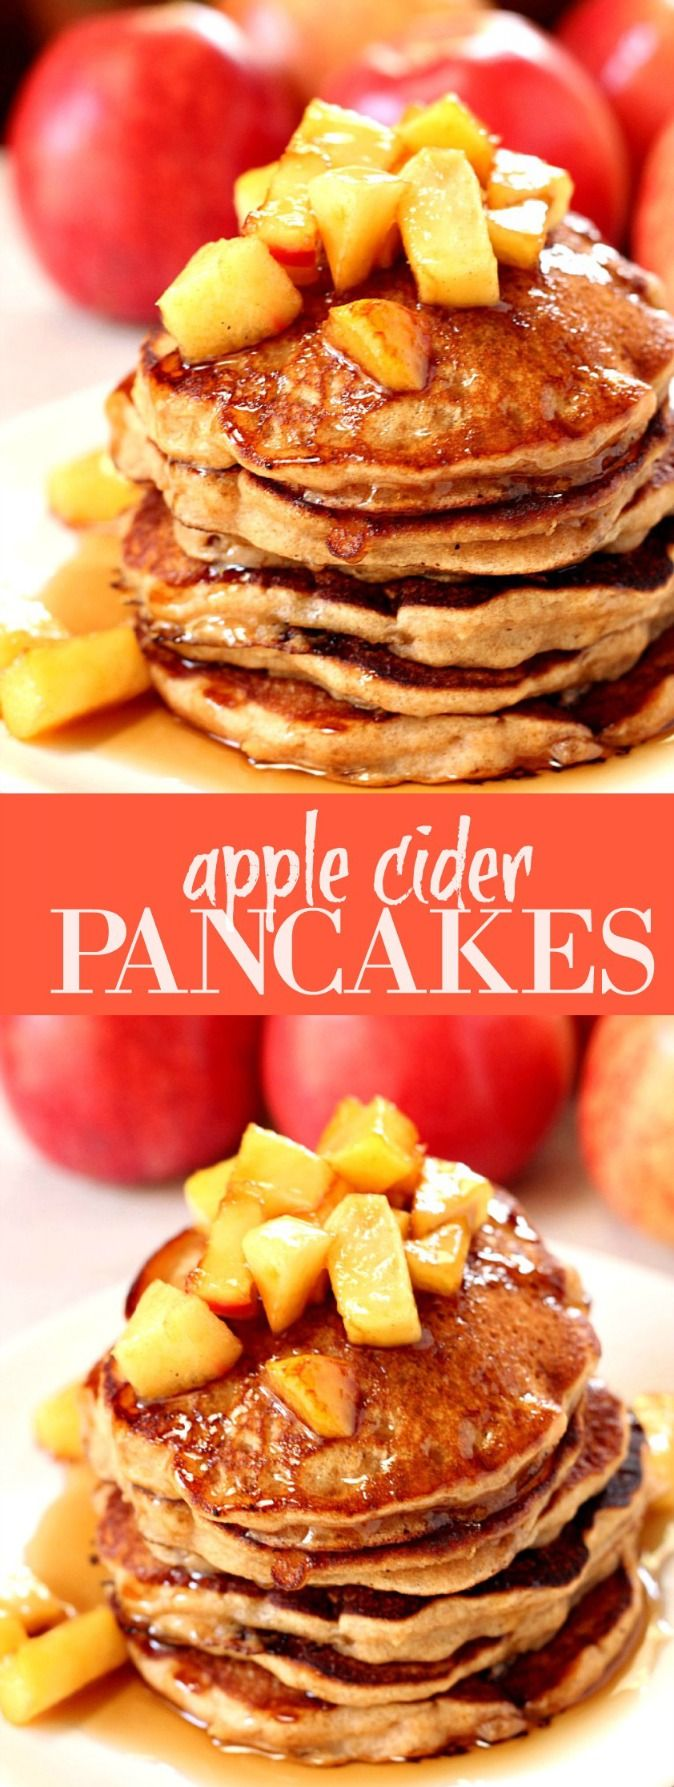 Apple Cider Pancakes - sweet and fluffy pancakes made with apple cider and topped with cinnamon sugar apples! Perfect fall weekend breakfast!